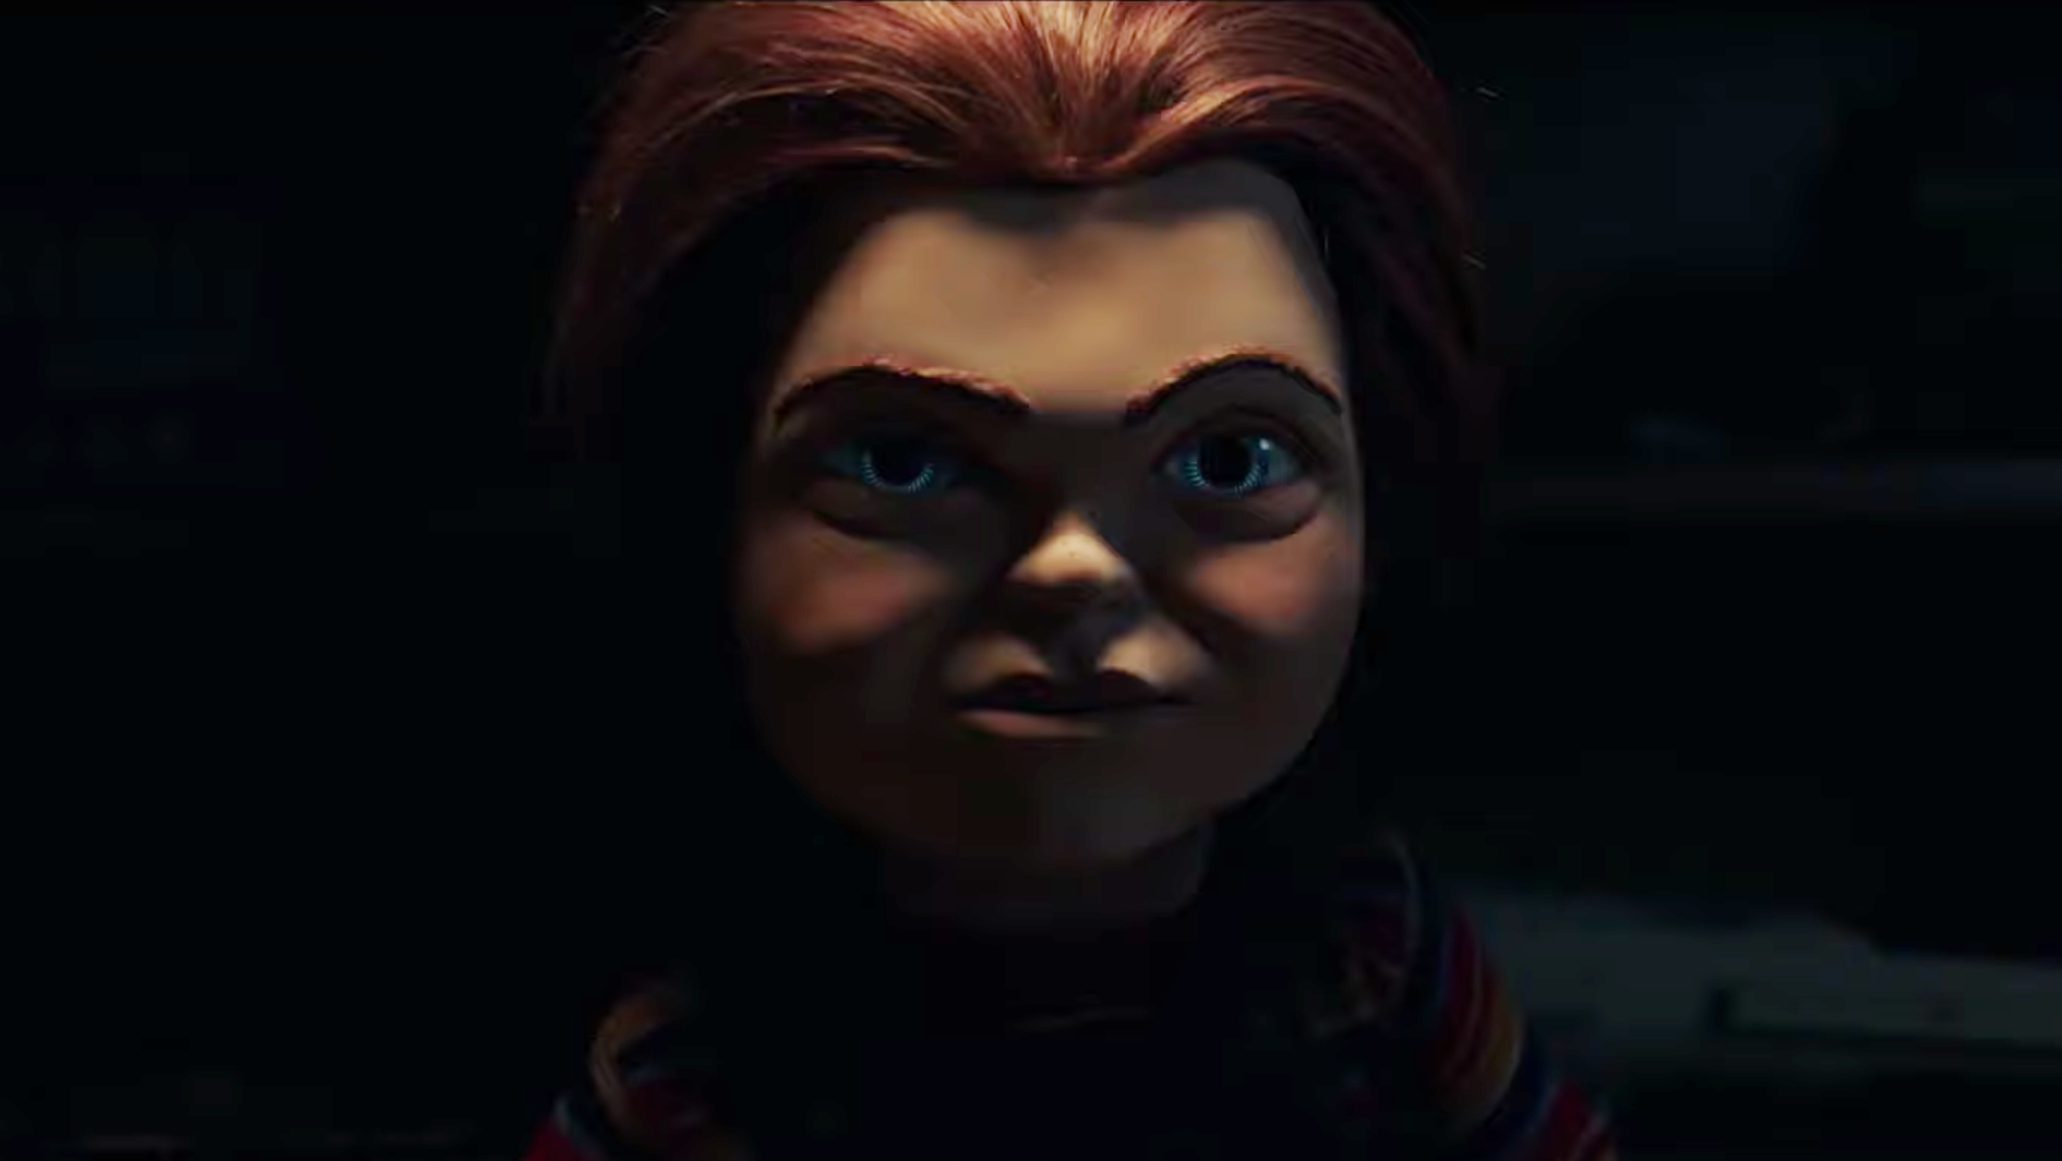 The New Child's Play Trailer Unveils Mark Hamill's Dastardly Doll Voice